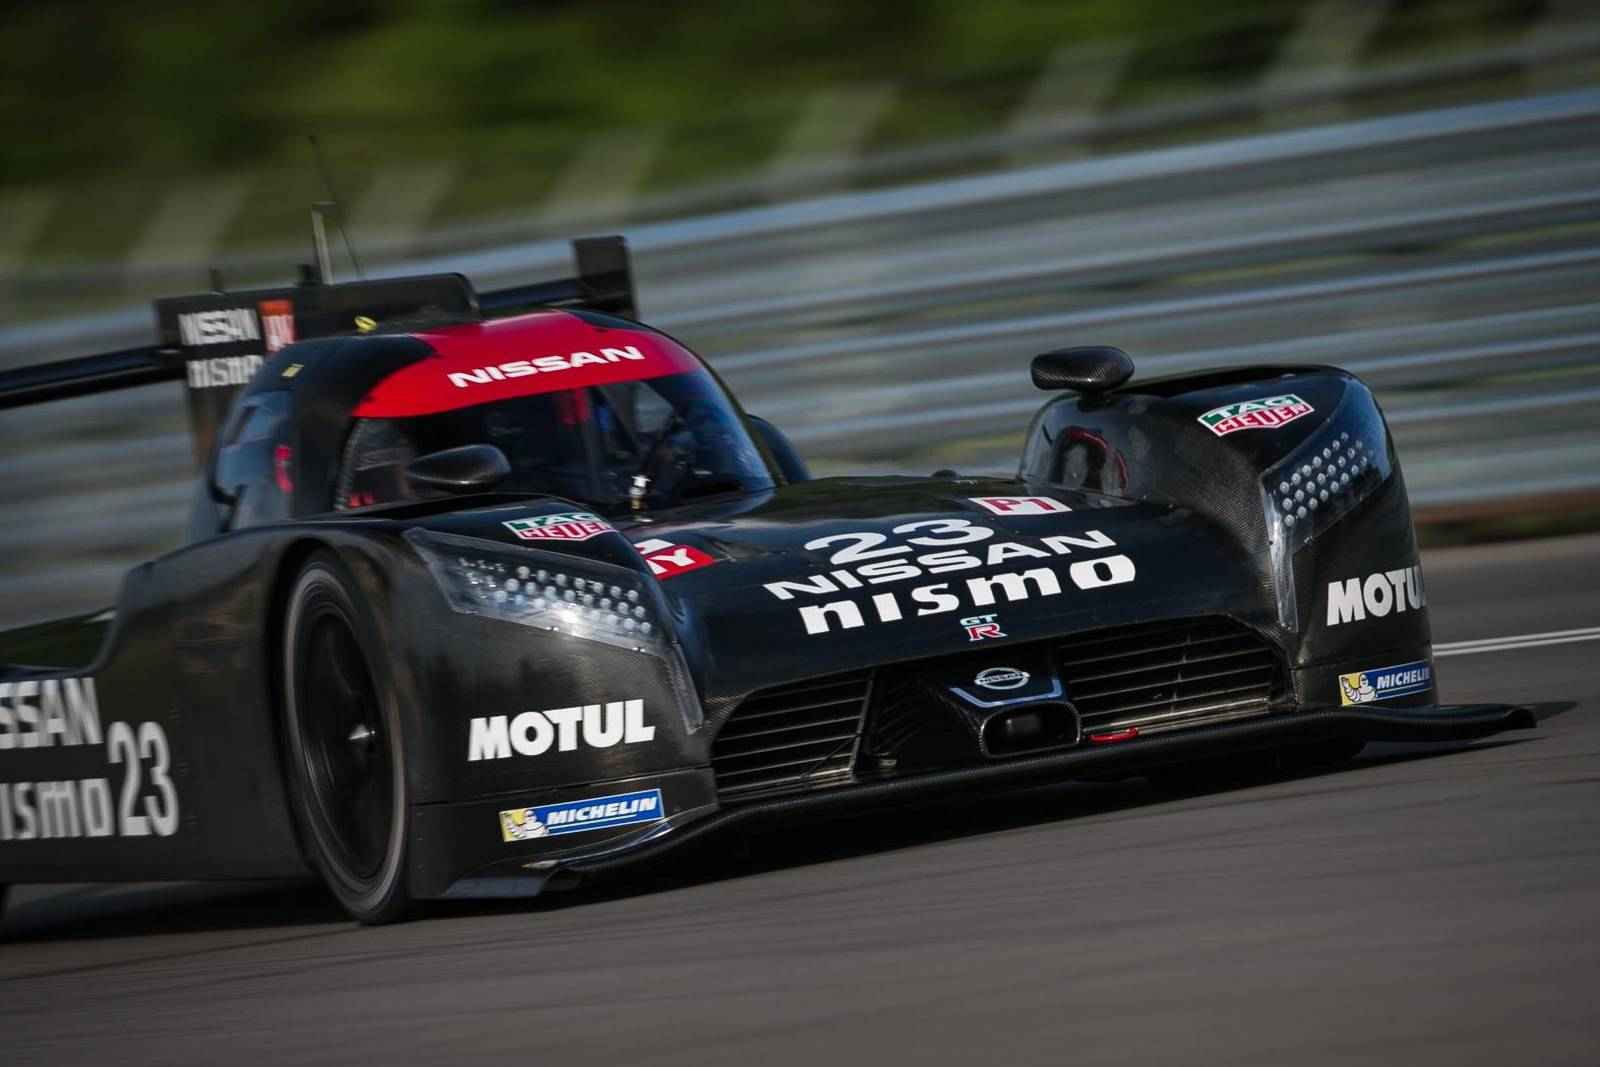 nissan gt r lm nismo specs revealed gtspirit. Black Bedroom Furniture Sets. Home Design Ideas